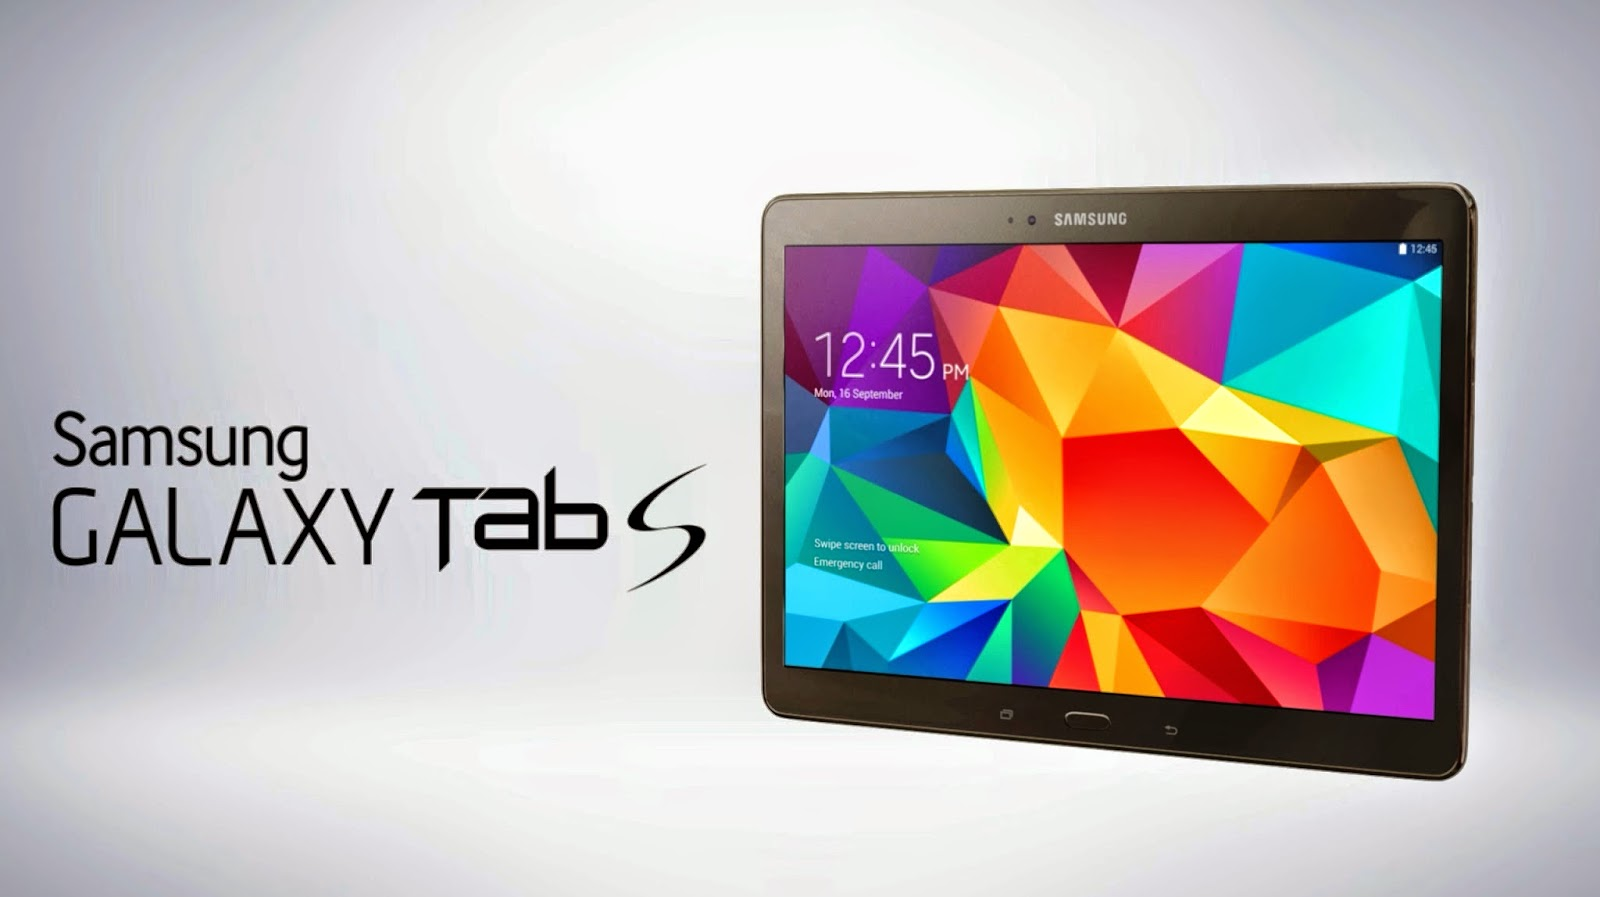 Samsung Galaxy Tab S Features And Specifications